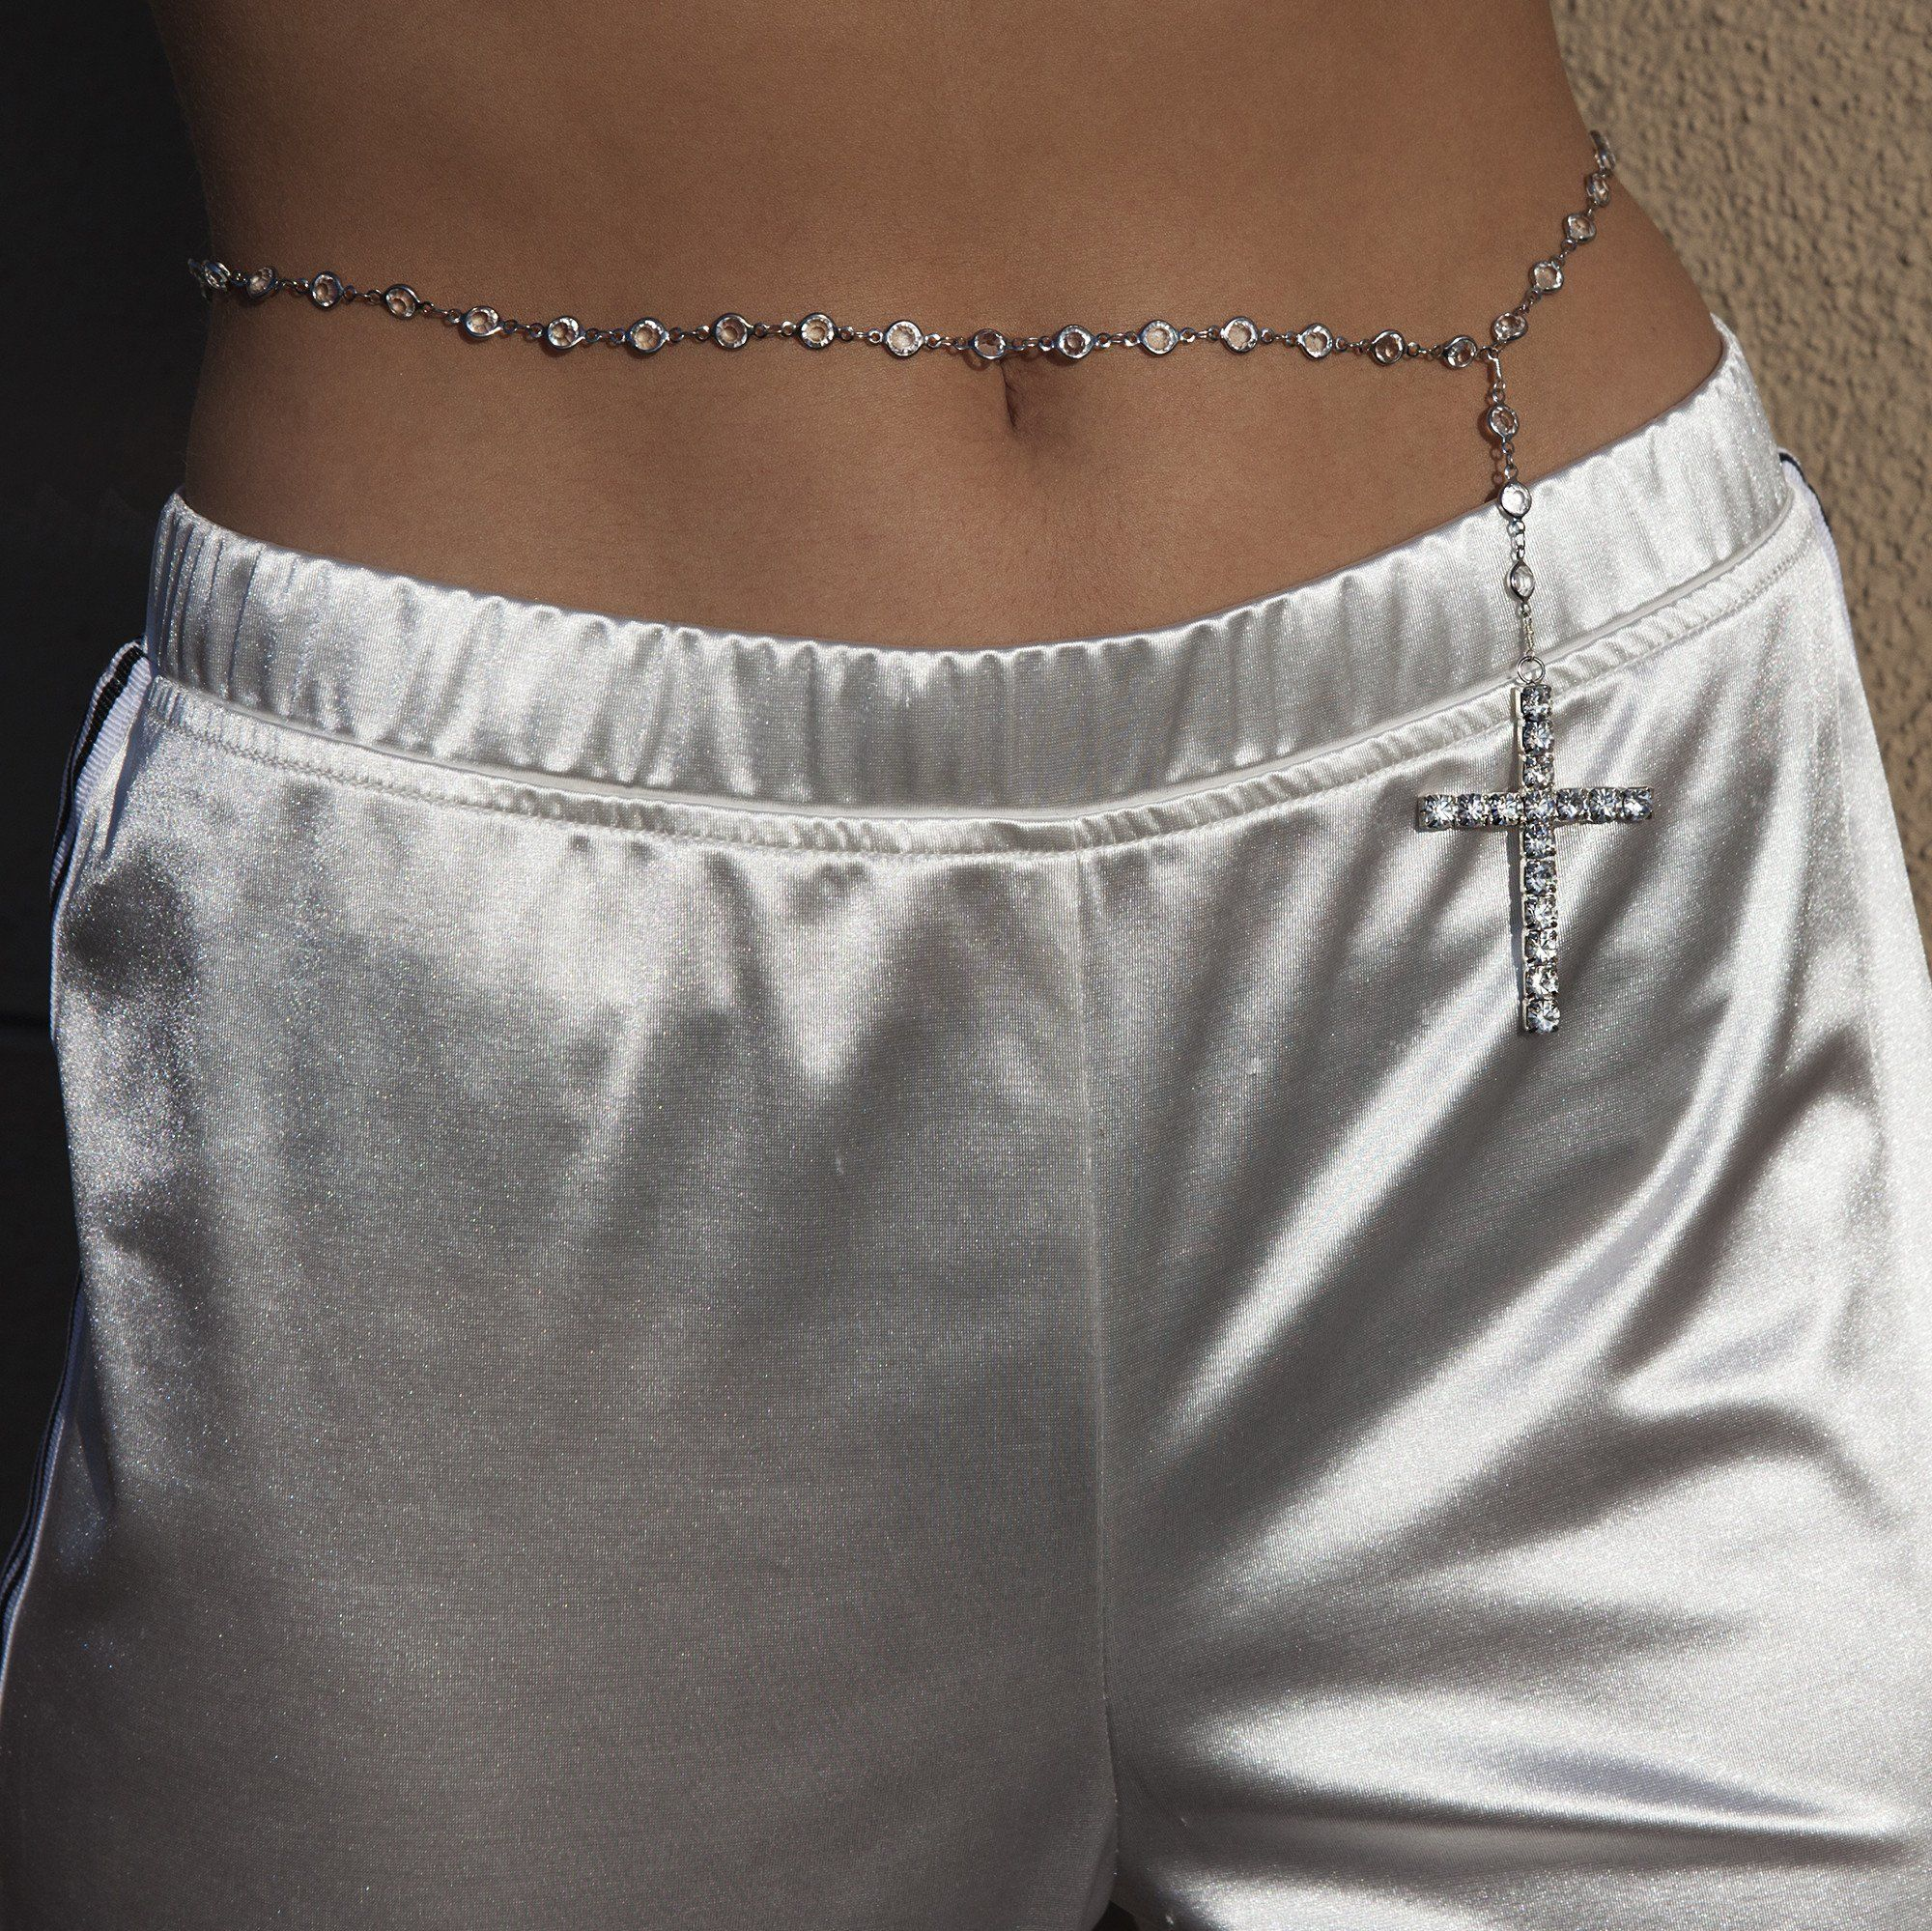 Selena Belly Chain In 2020 Belly Chain Waist Jewelry Fashion